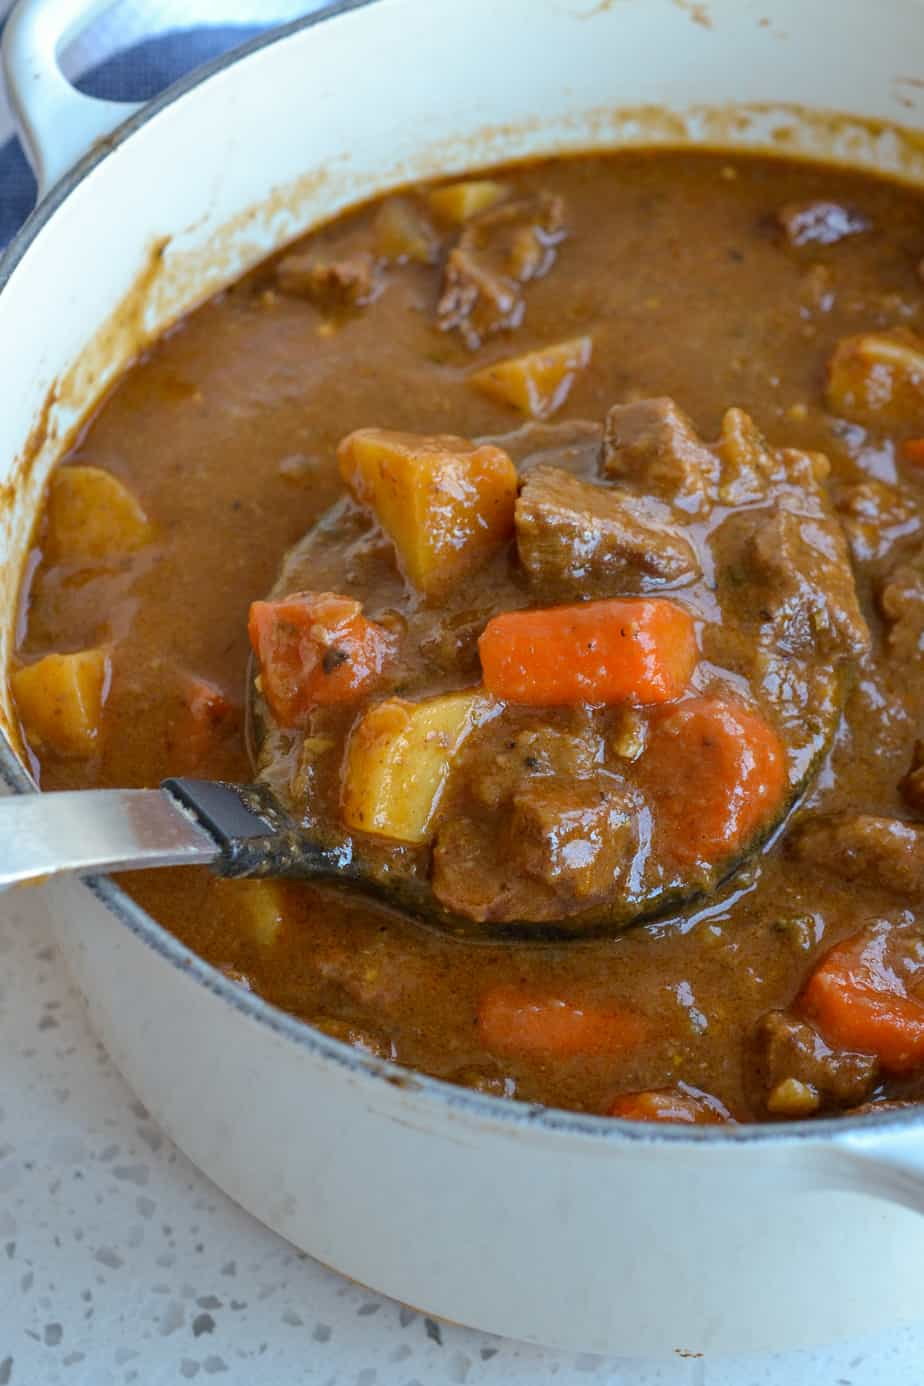 A warm rich and flavorful beef stew with onions, potatoes, and carrots.